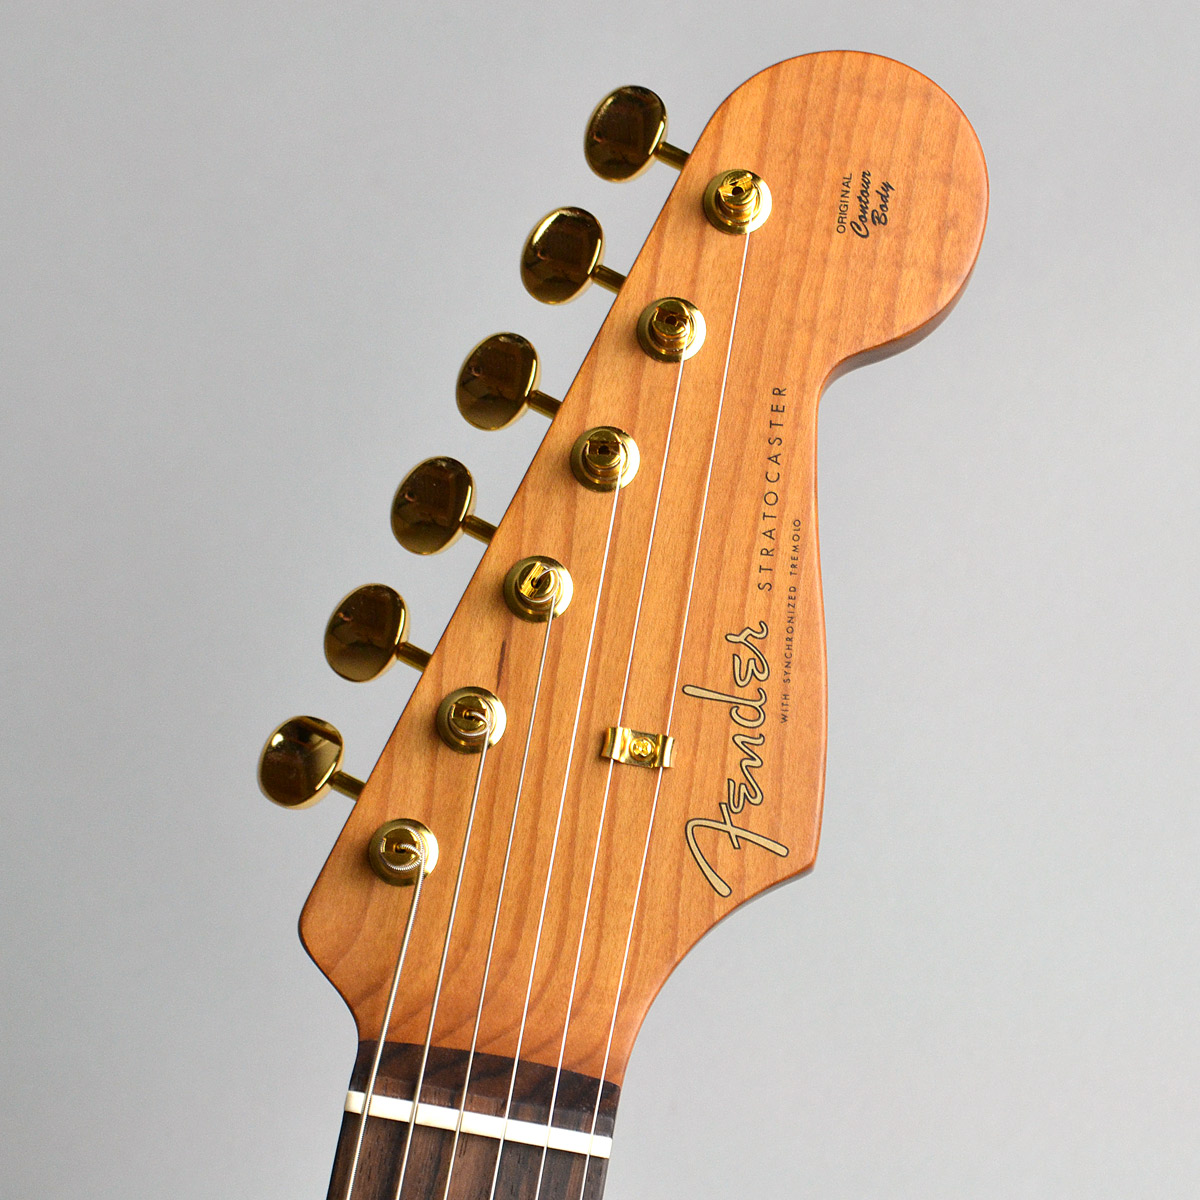 Made in Japan 2020 Limited Collection Stratocasterのヘッド画像